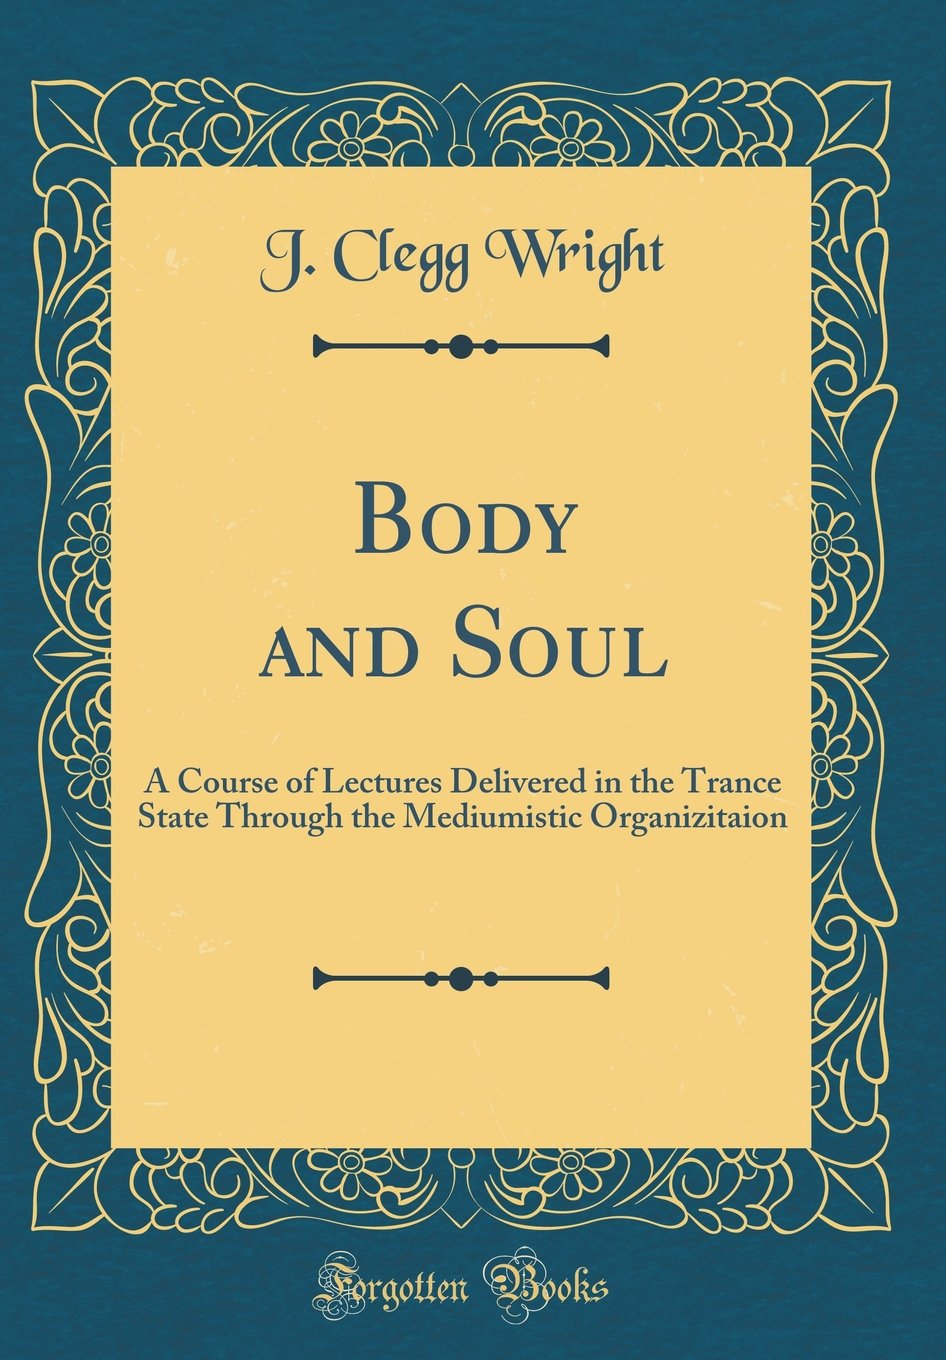 Download Body and Soul: A Course of Lectures Delivered in the Trance State Through the Mediumistic Organizitaion (Classic Reprint) ebook